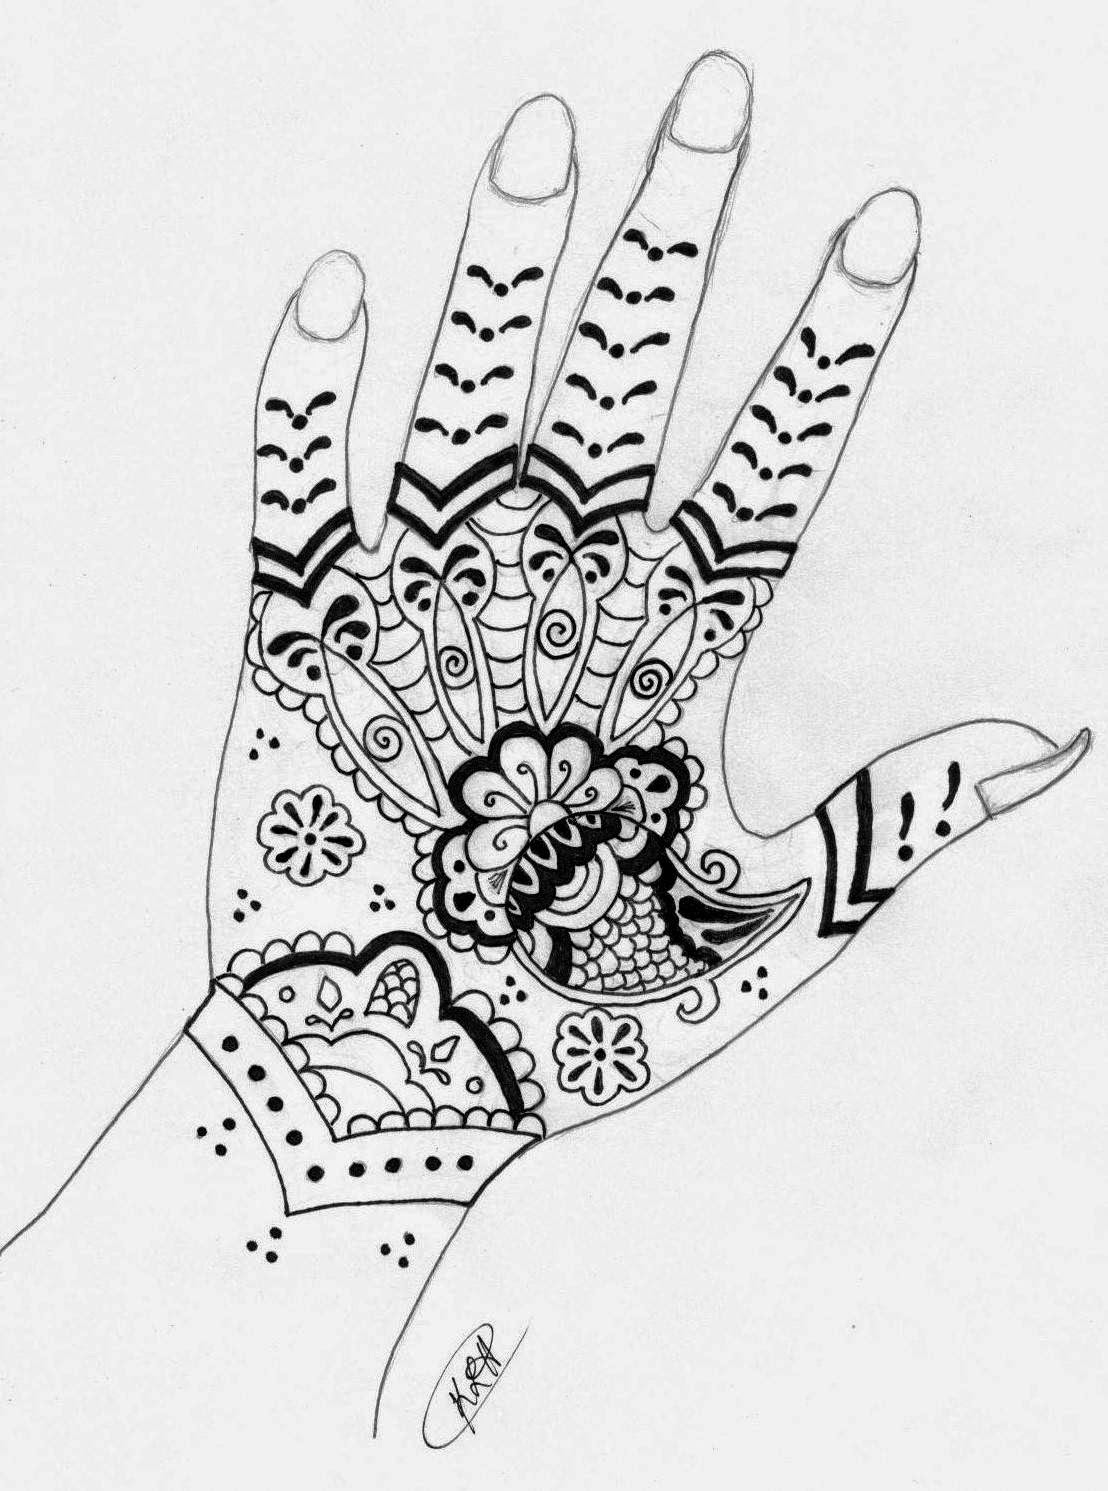 66 Images For Paper Drawing Henna Design ~ All What Veiled